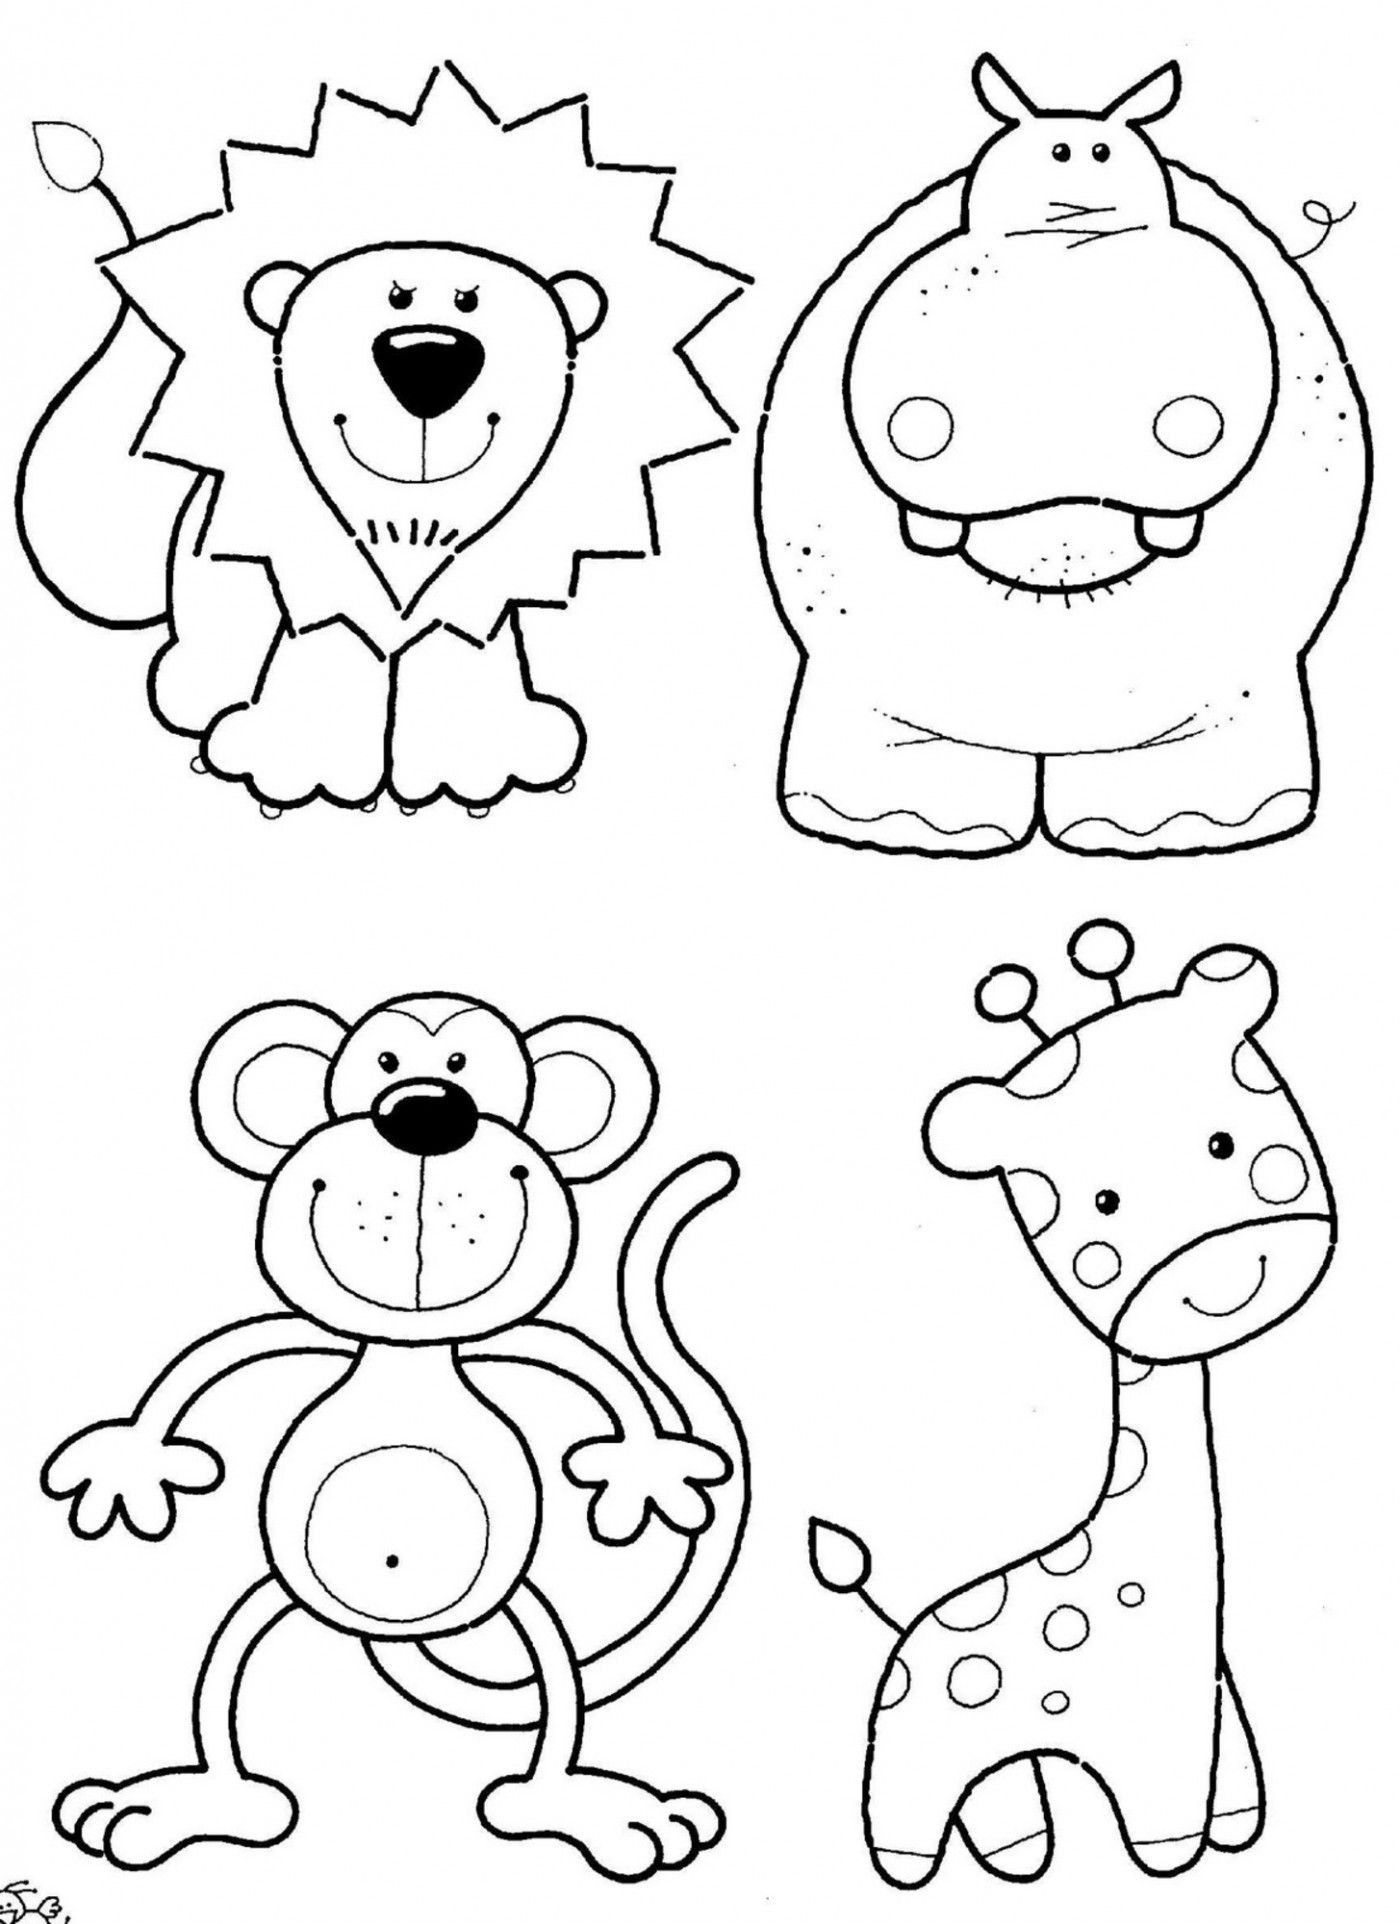 Drawing animal printables for toddlers online